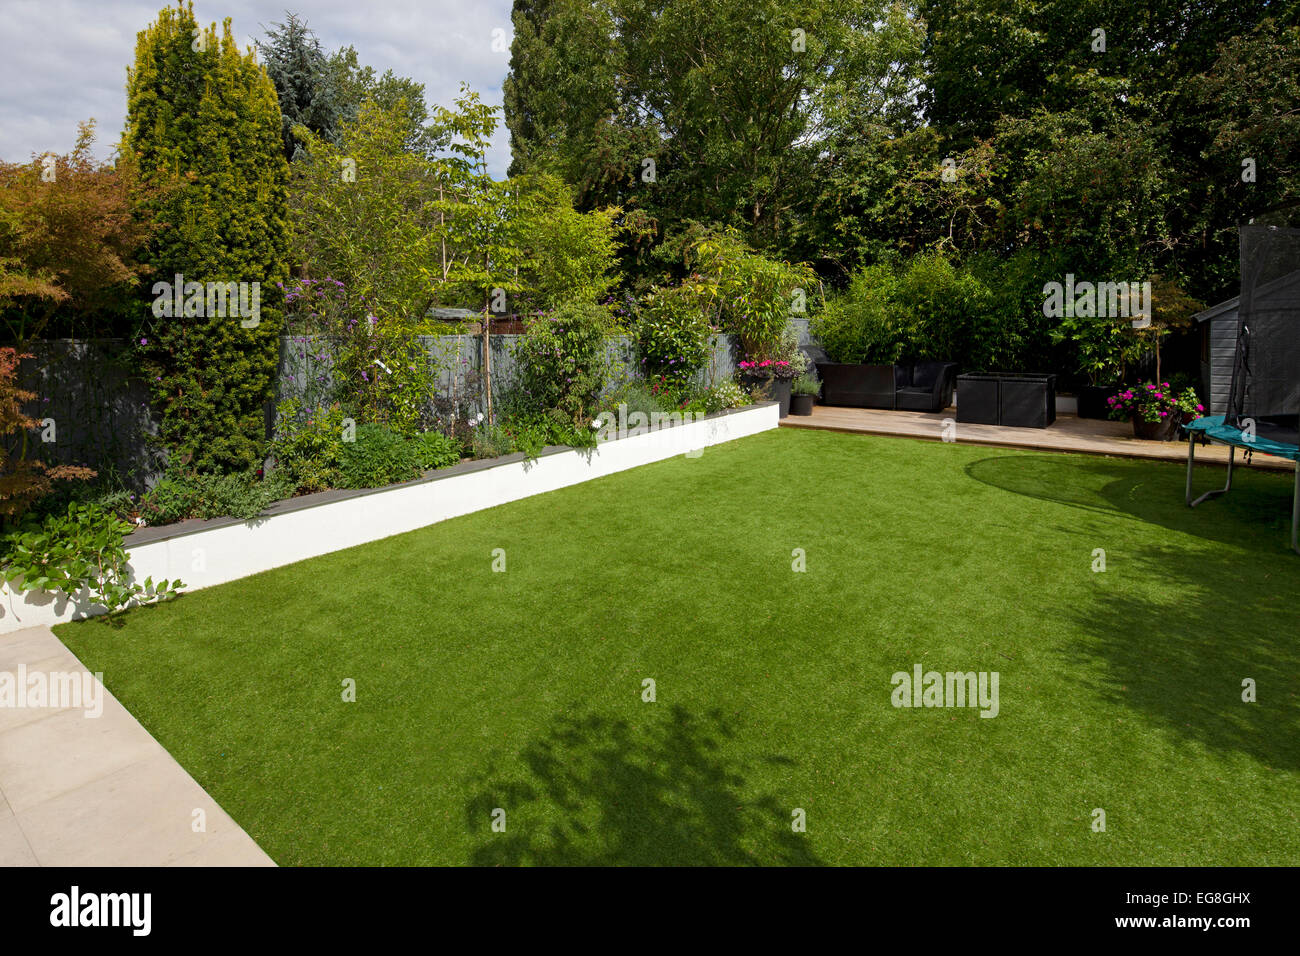 Artifical plastic fake lawn in English contemporary garden,Oxfordshire,England - Stock Image